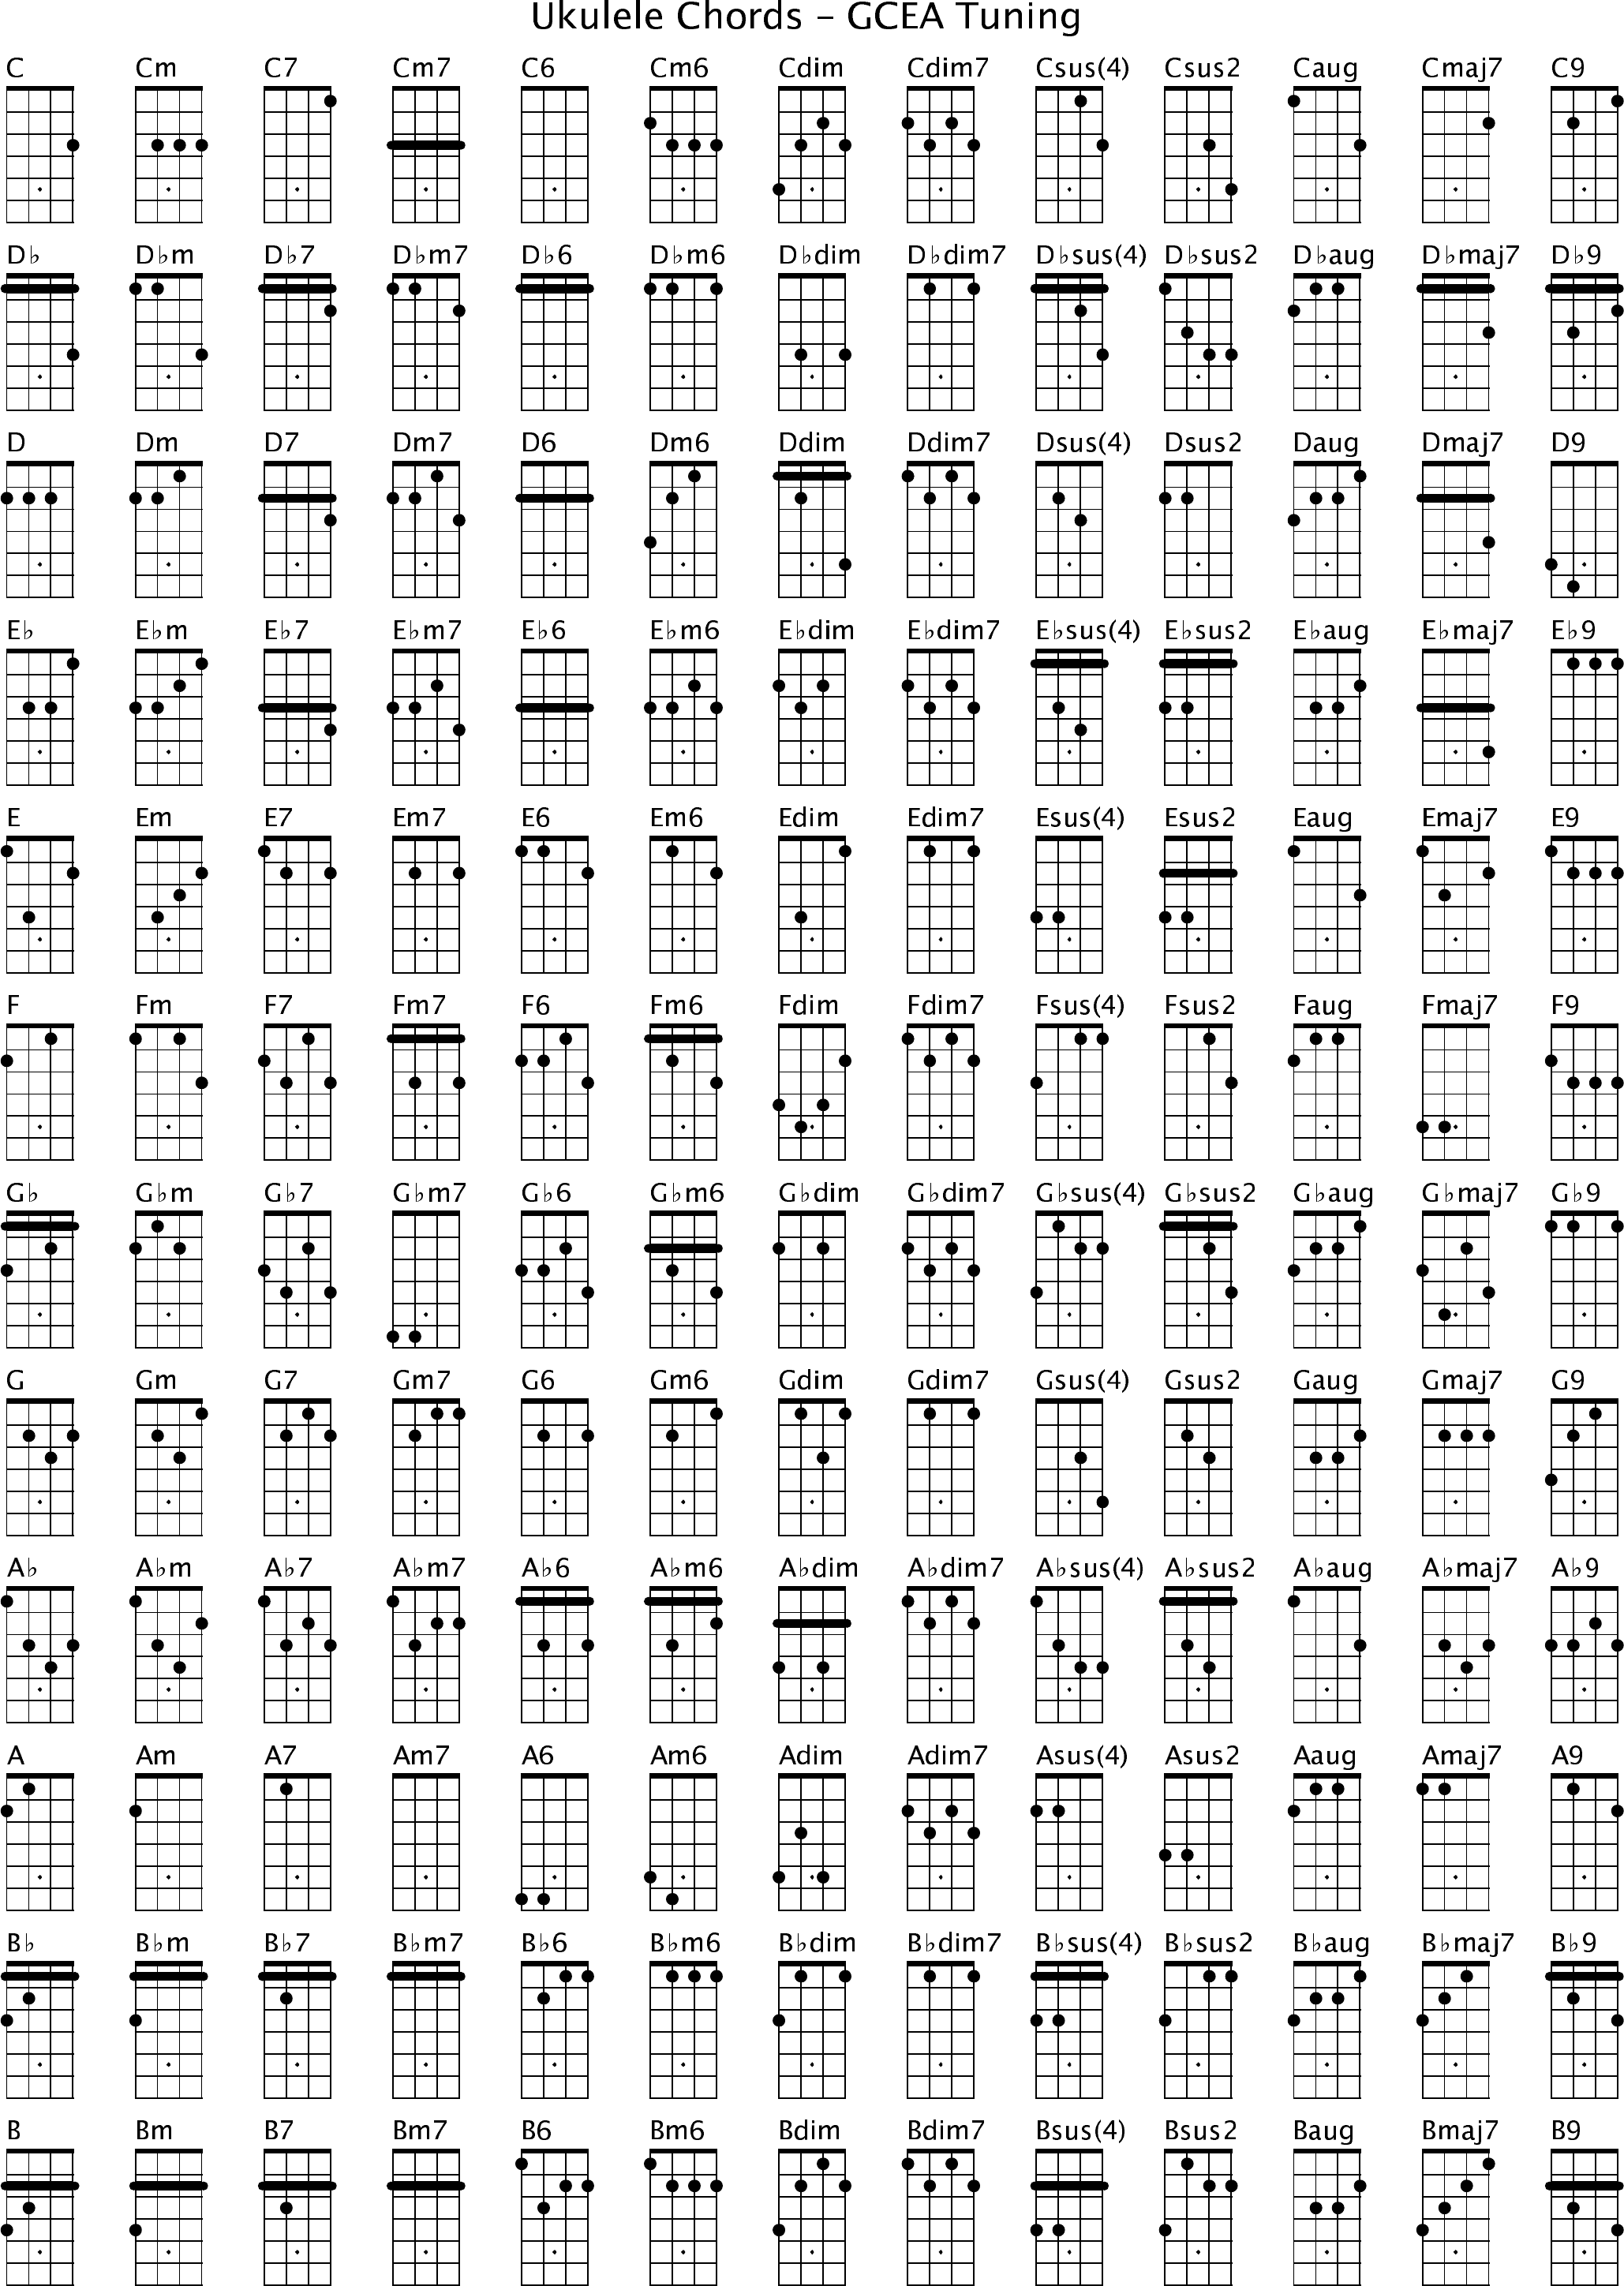 Ukulele Chords GCEA Tuning Free Download